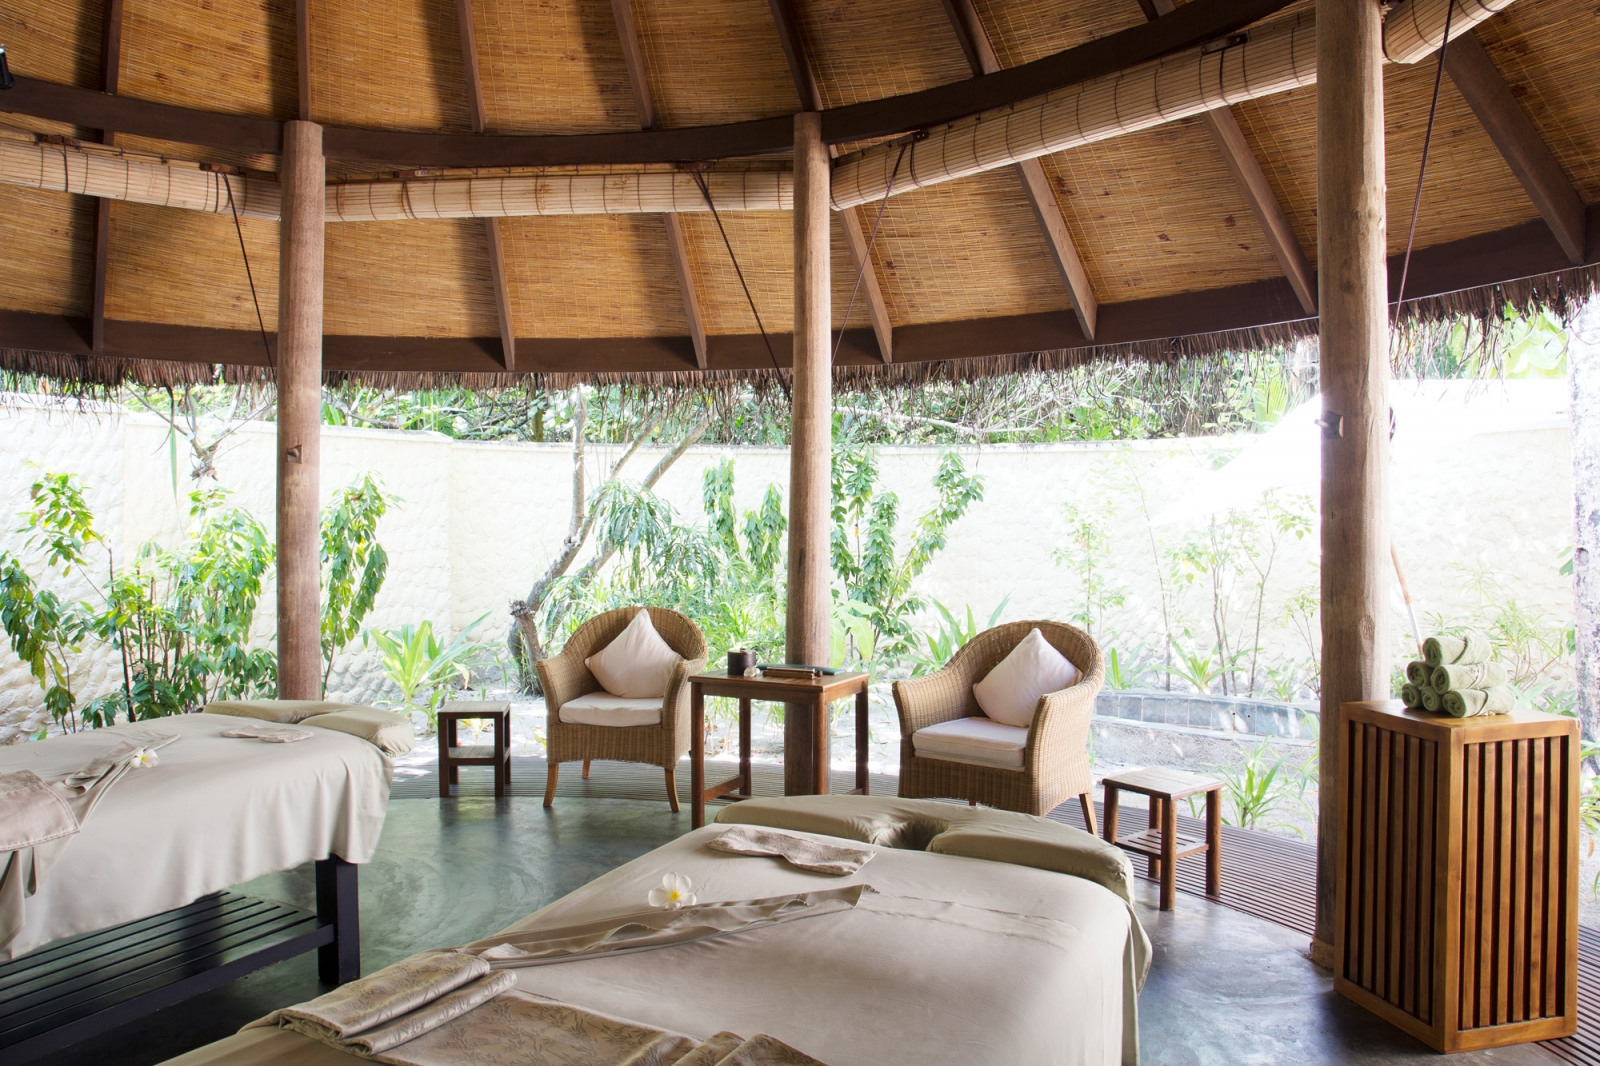 Coco Spa: Luxury Spa & Wellness Treatments | Coco Collection